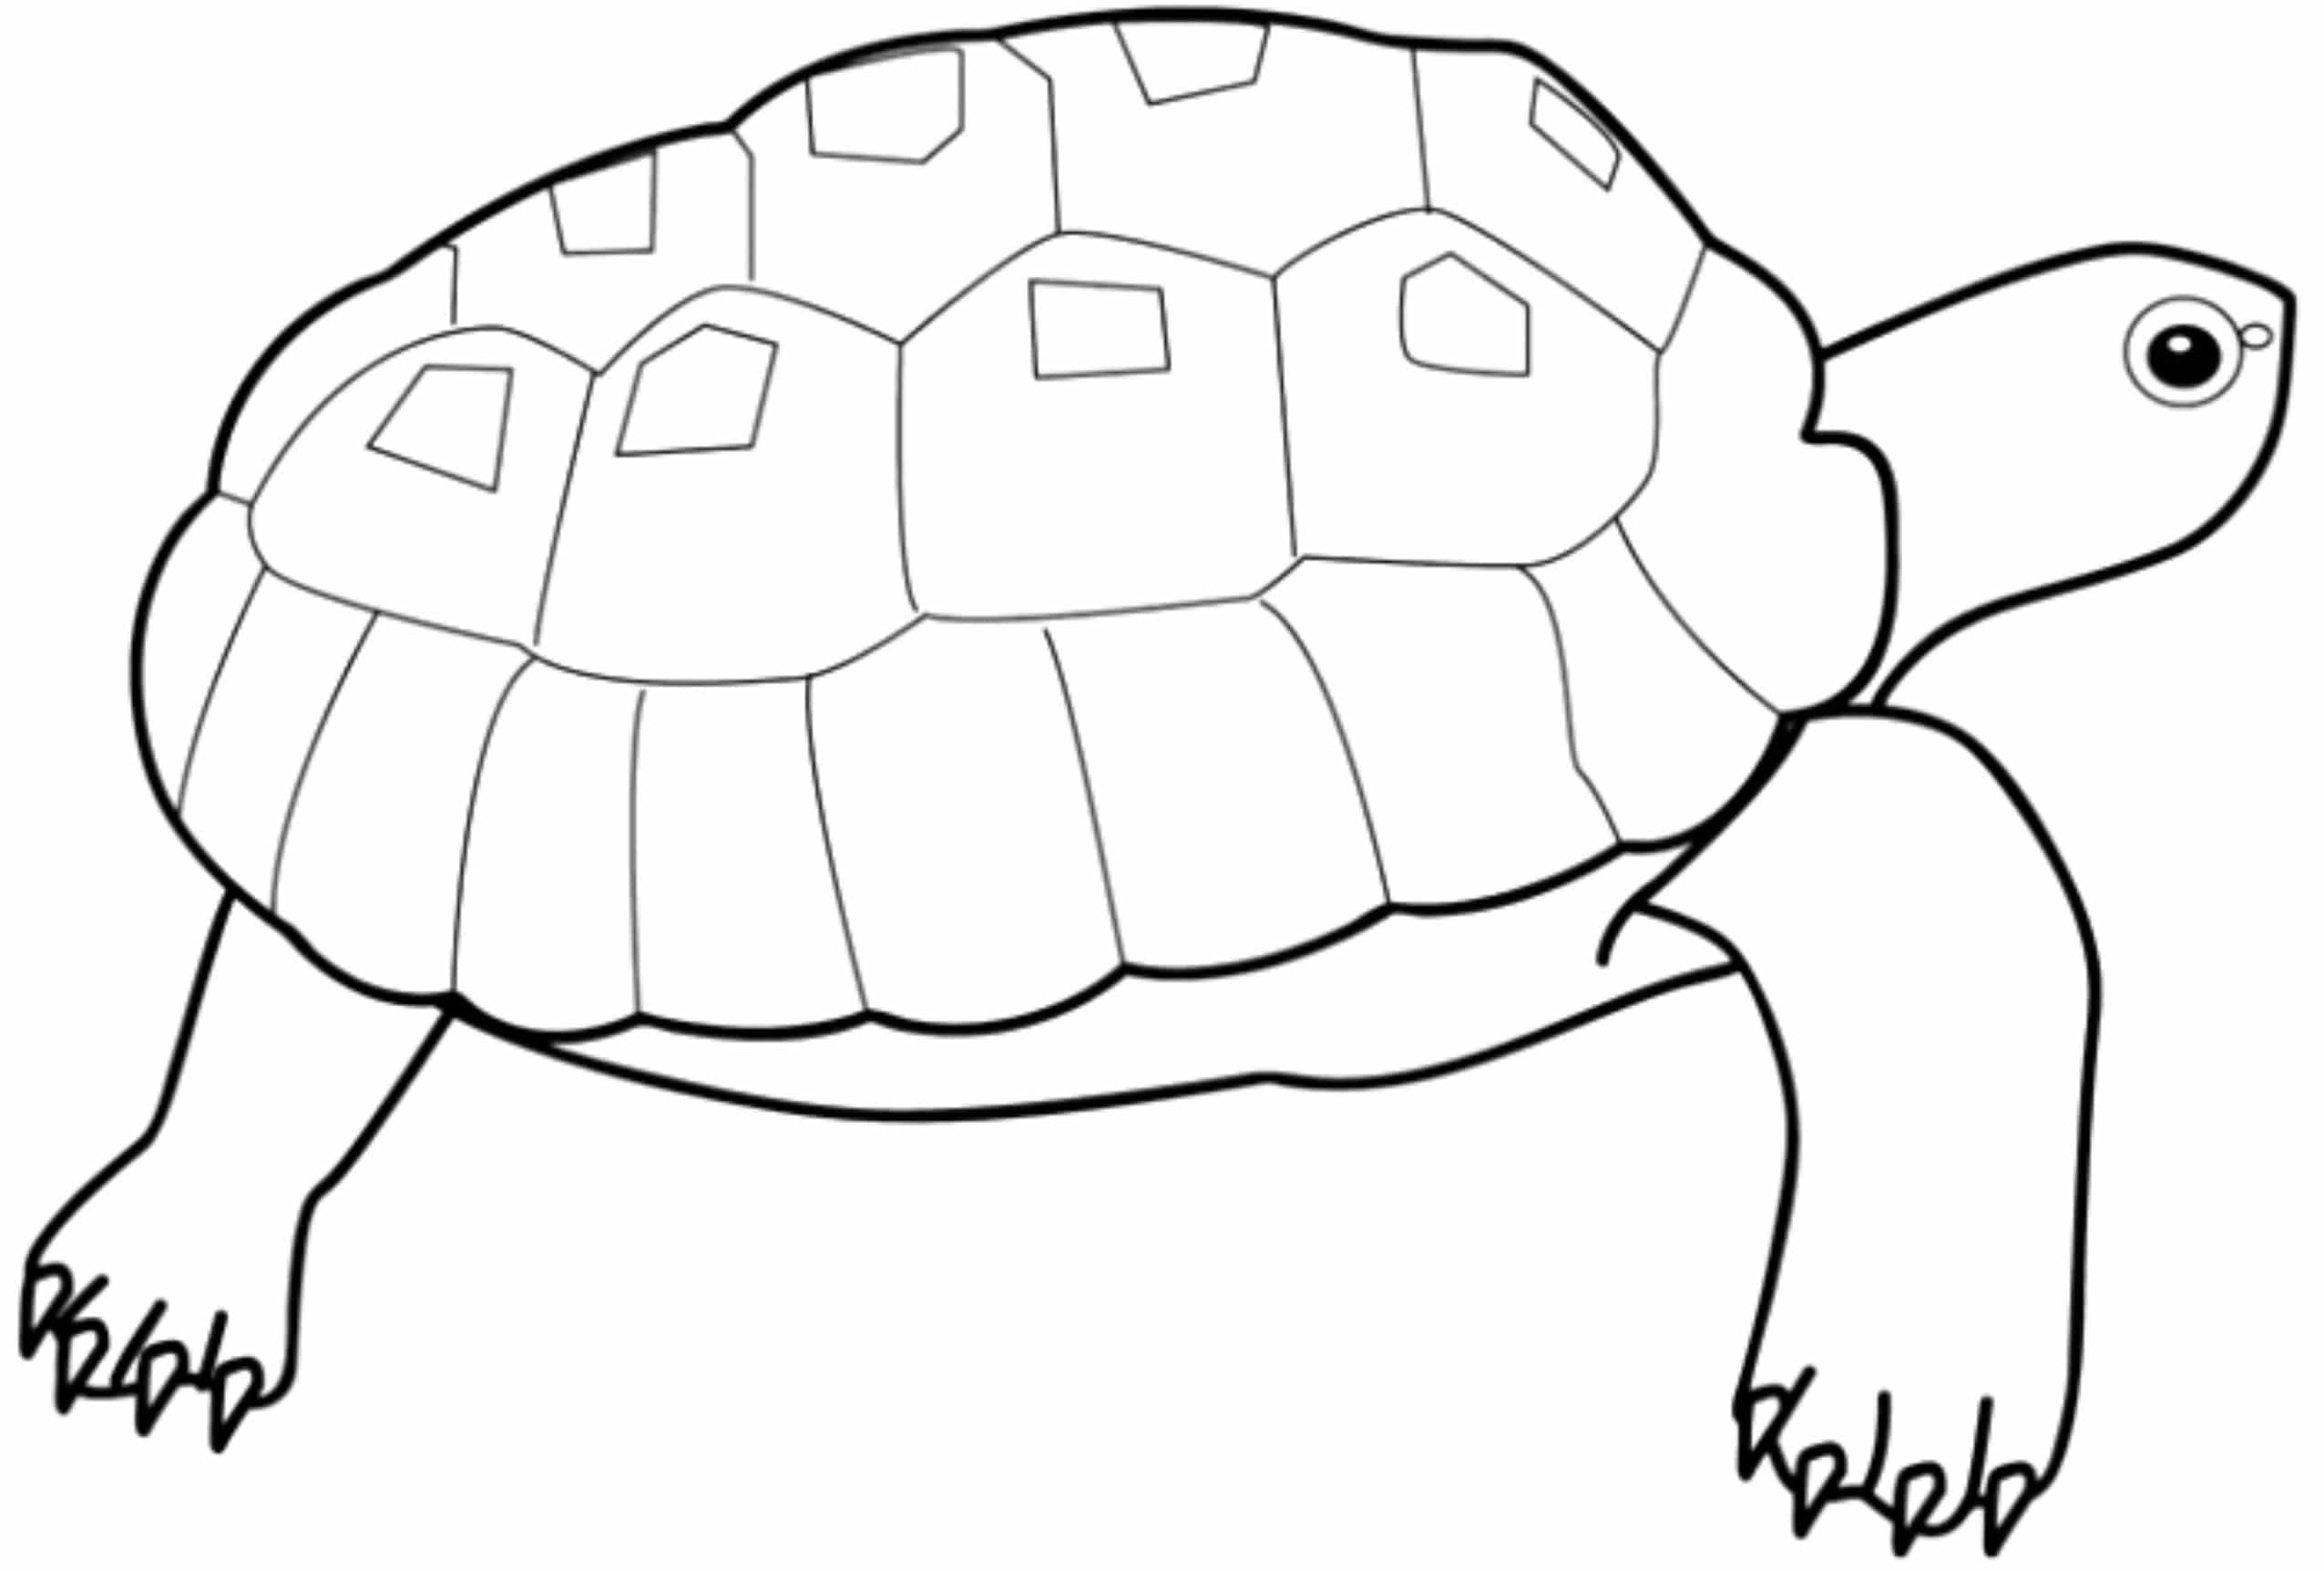 Print & Download - Turtle Coloring Pages as the